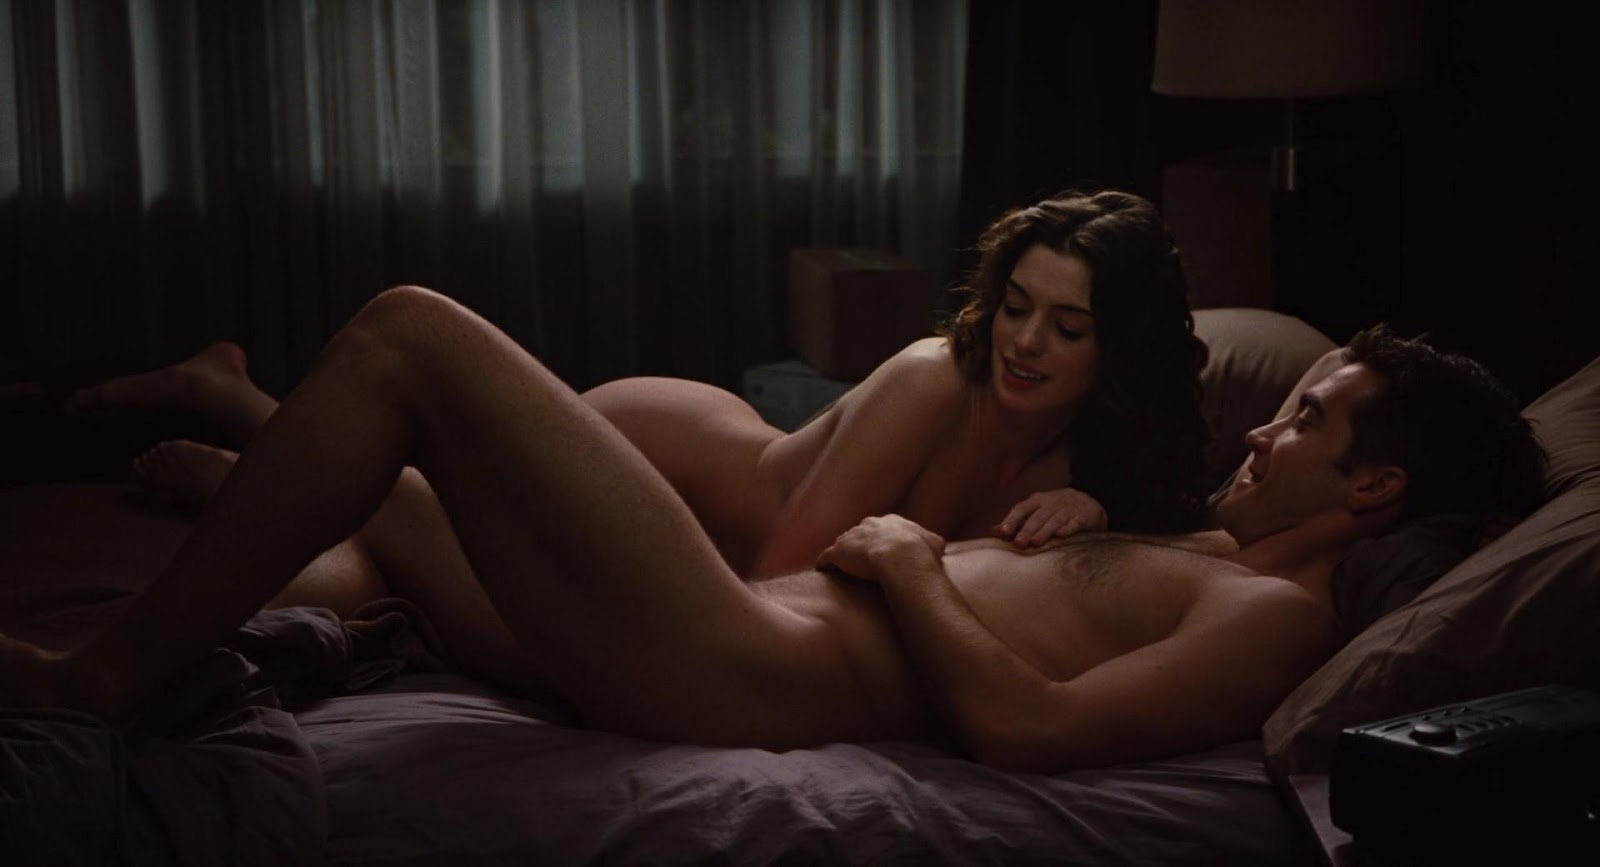 http://3.bp.blogspot.com/-6GjV72PfNJM/UDSQ2KZDcVI/AAAAAAAACI4/cGV4H5UV3ds/s1600/Anne+Hathaway+-+Love+and+Other+Drugs++1080p10.jpg